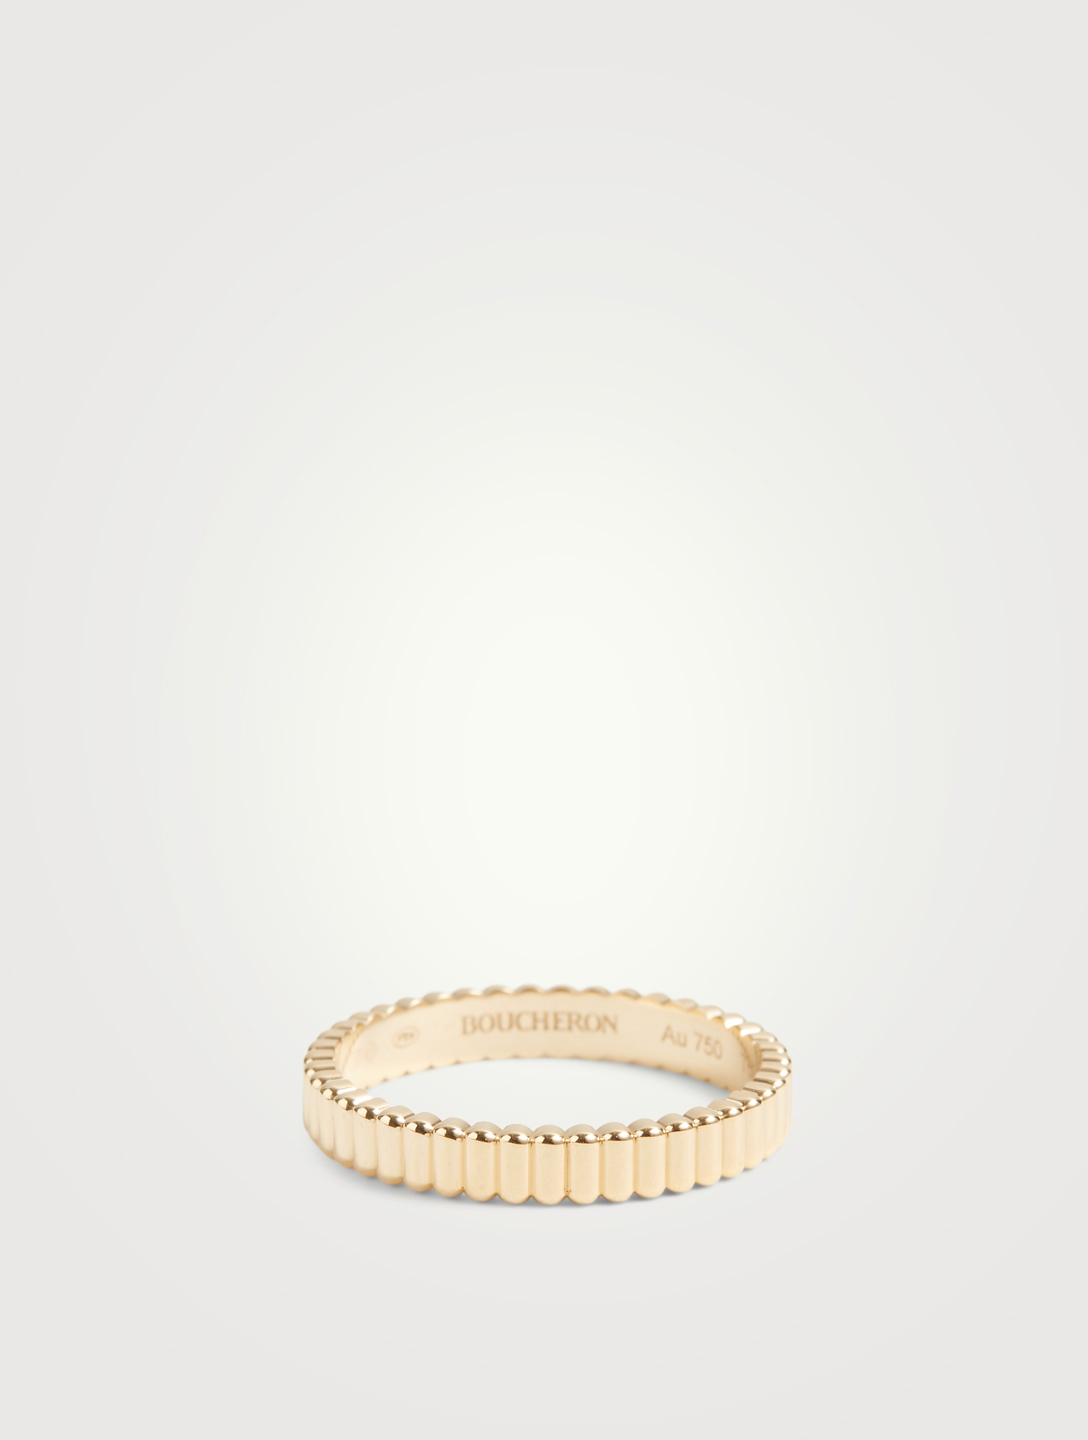 BOUCHERON Grosgrain Gold Wedding Band Women's Metallic